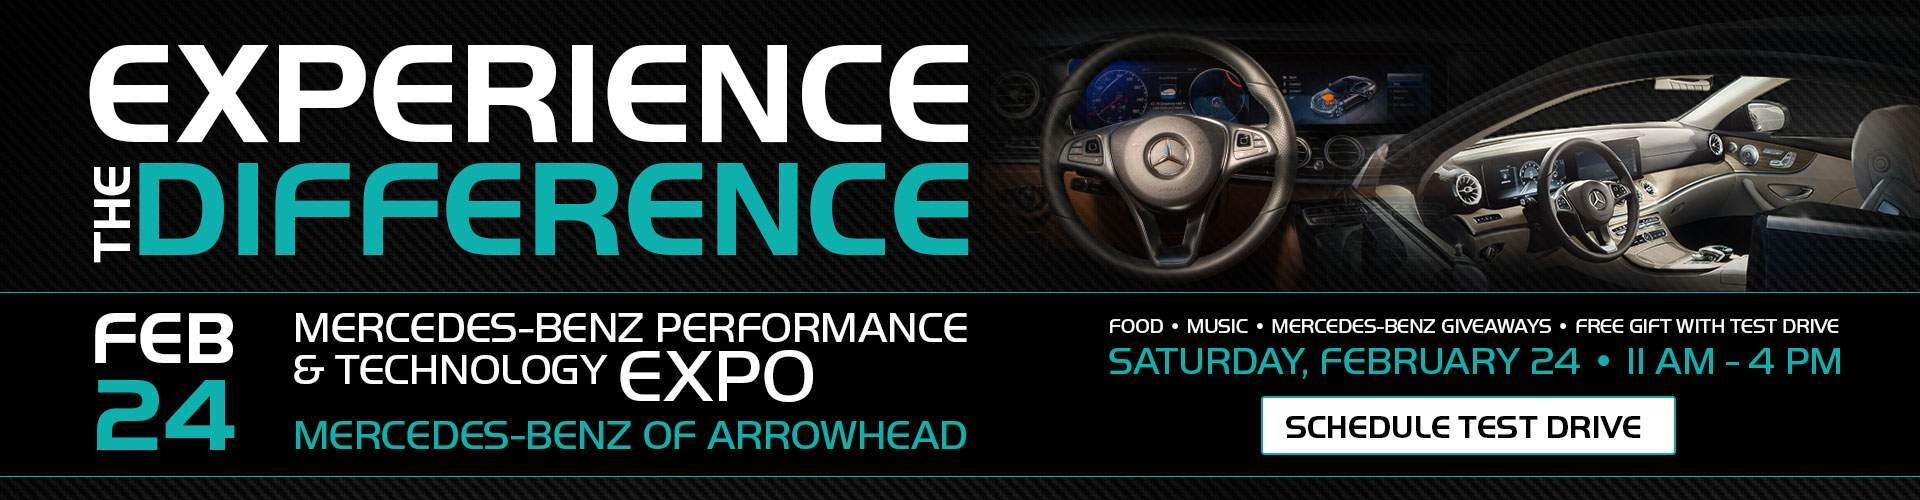 Experience the Difference at Mercedes-Benz Performance & Technology EXPO